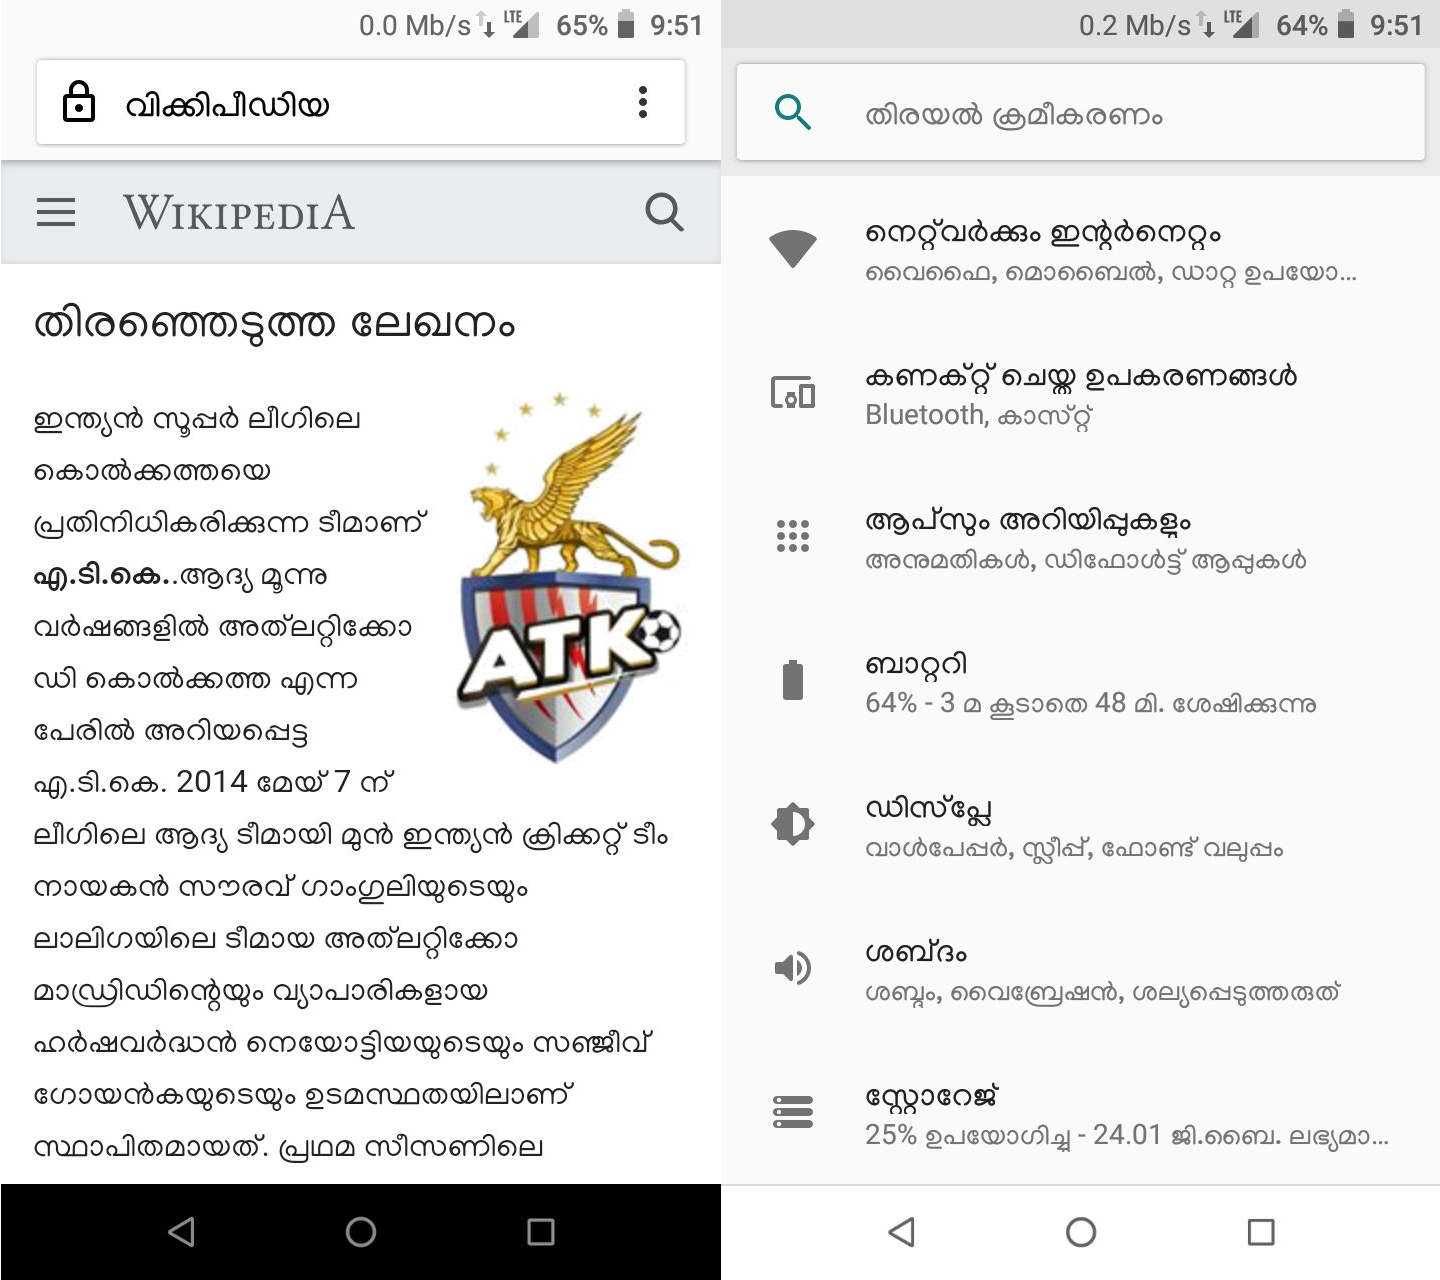 Manjari on Android in Action.